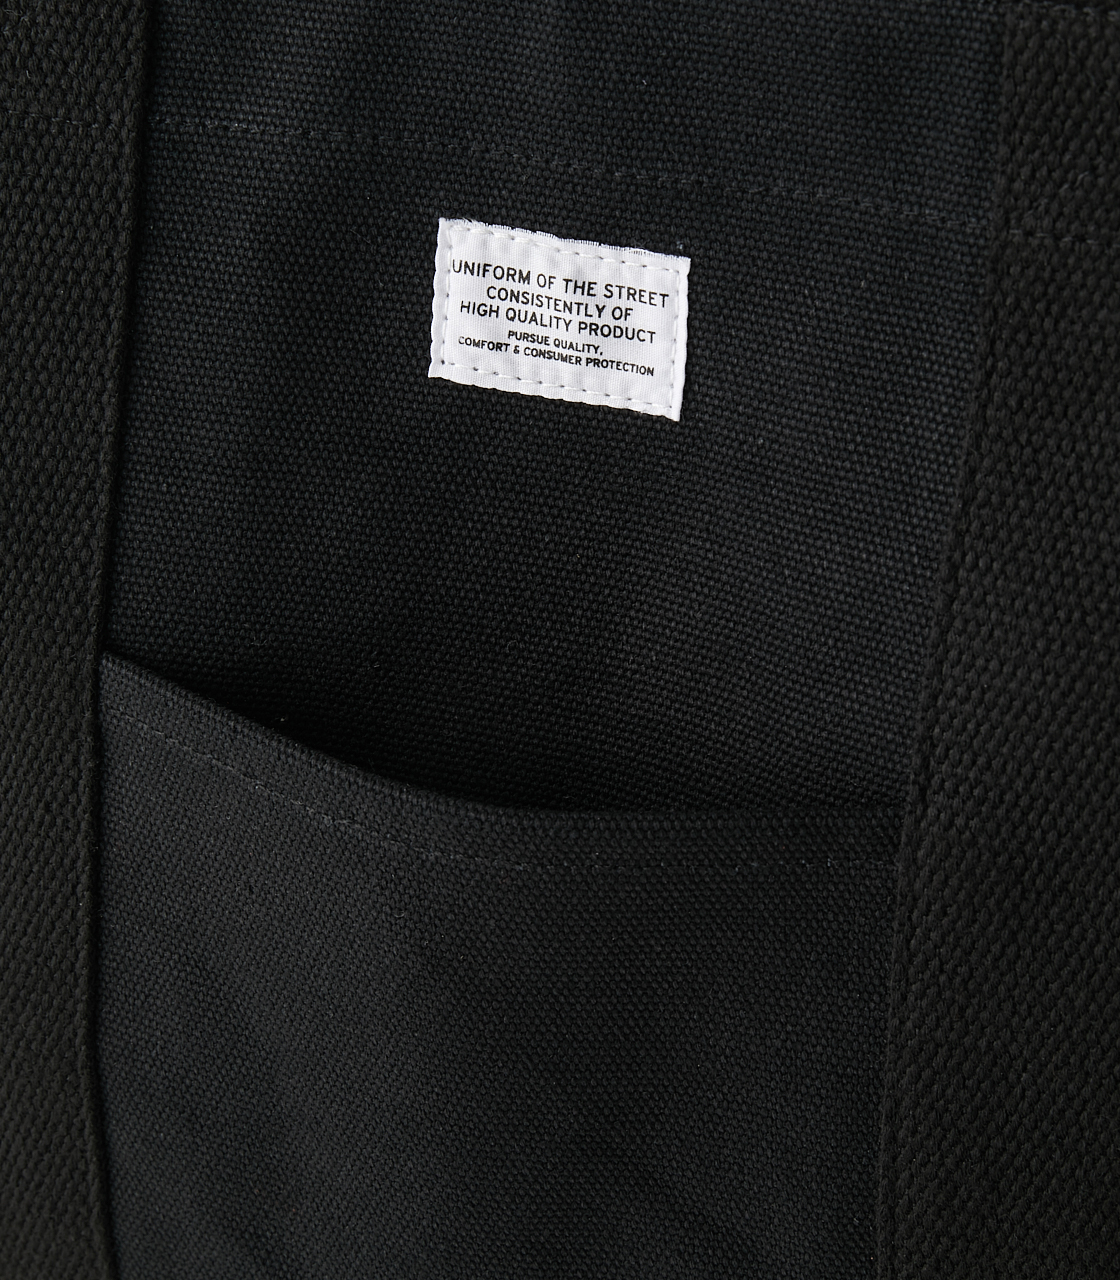 CANVAS TOTE BAG/キャンバストートバッグ 詳細画像 BLK 4